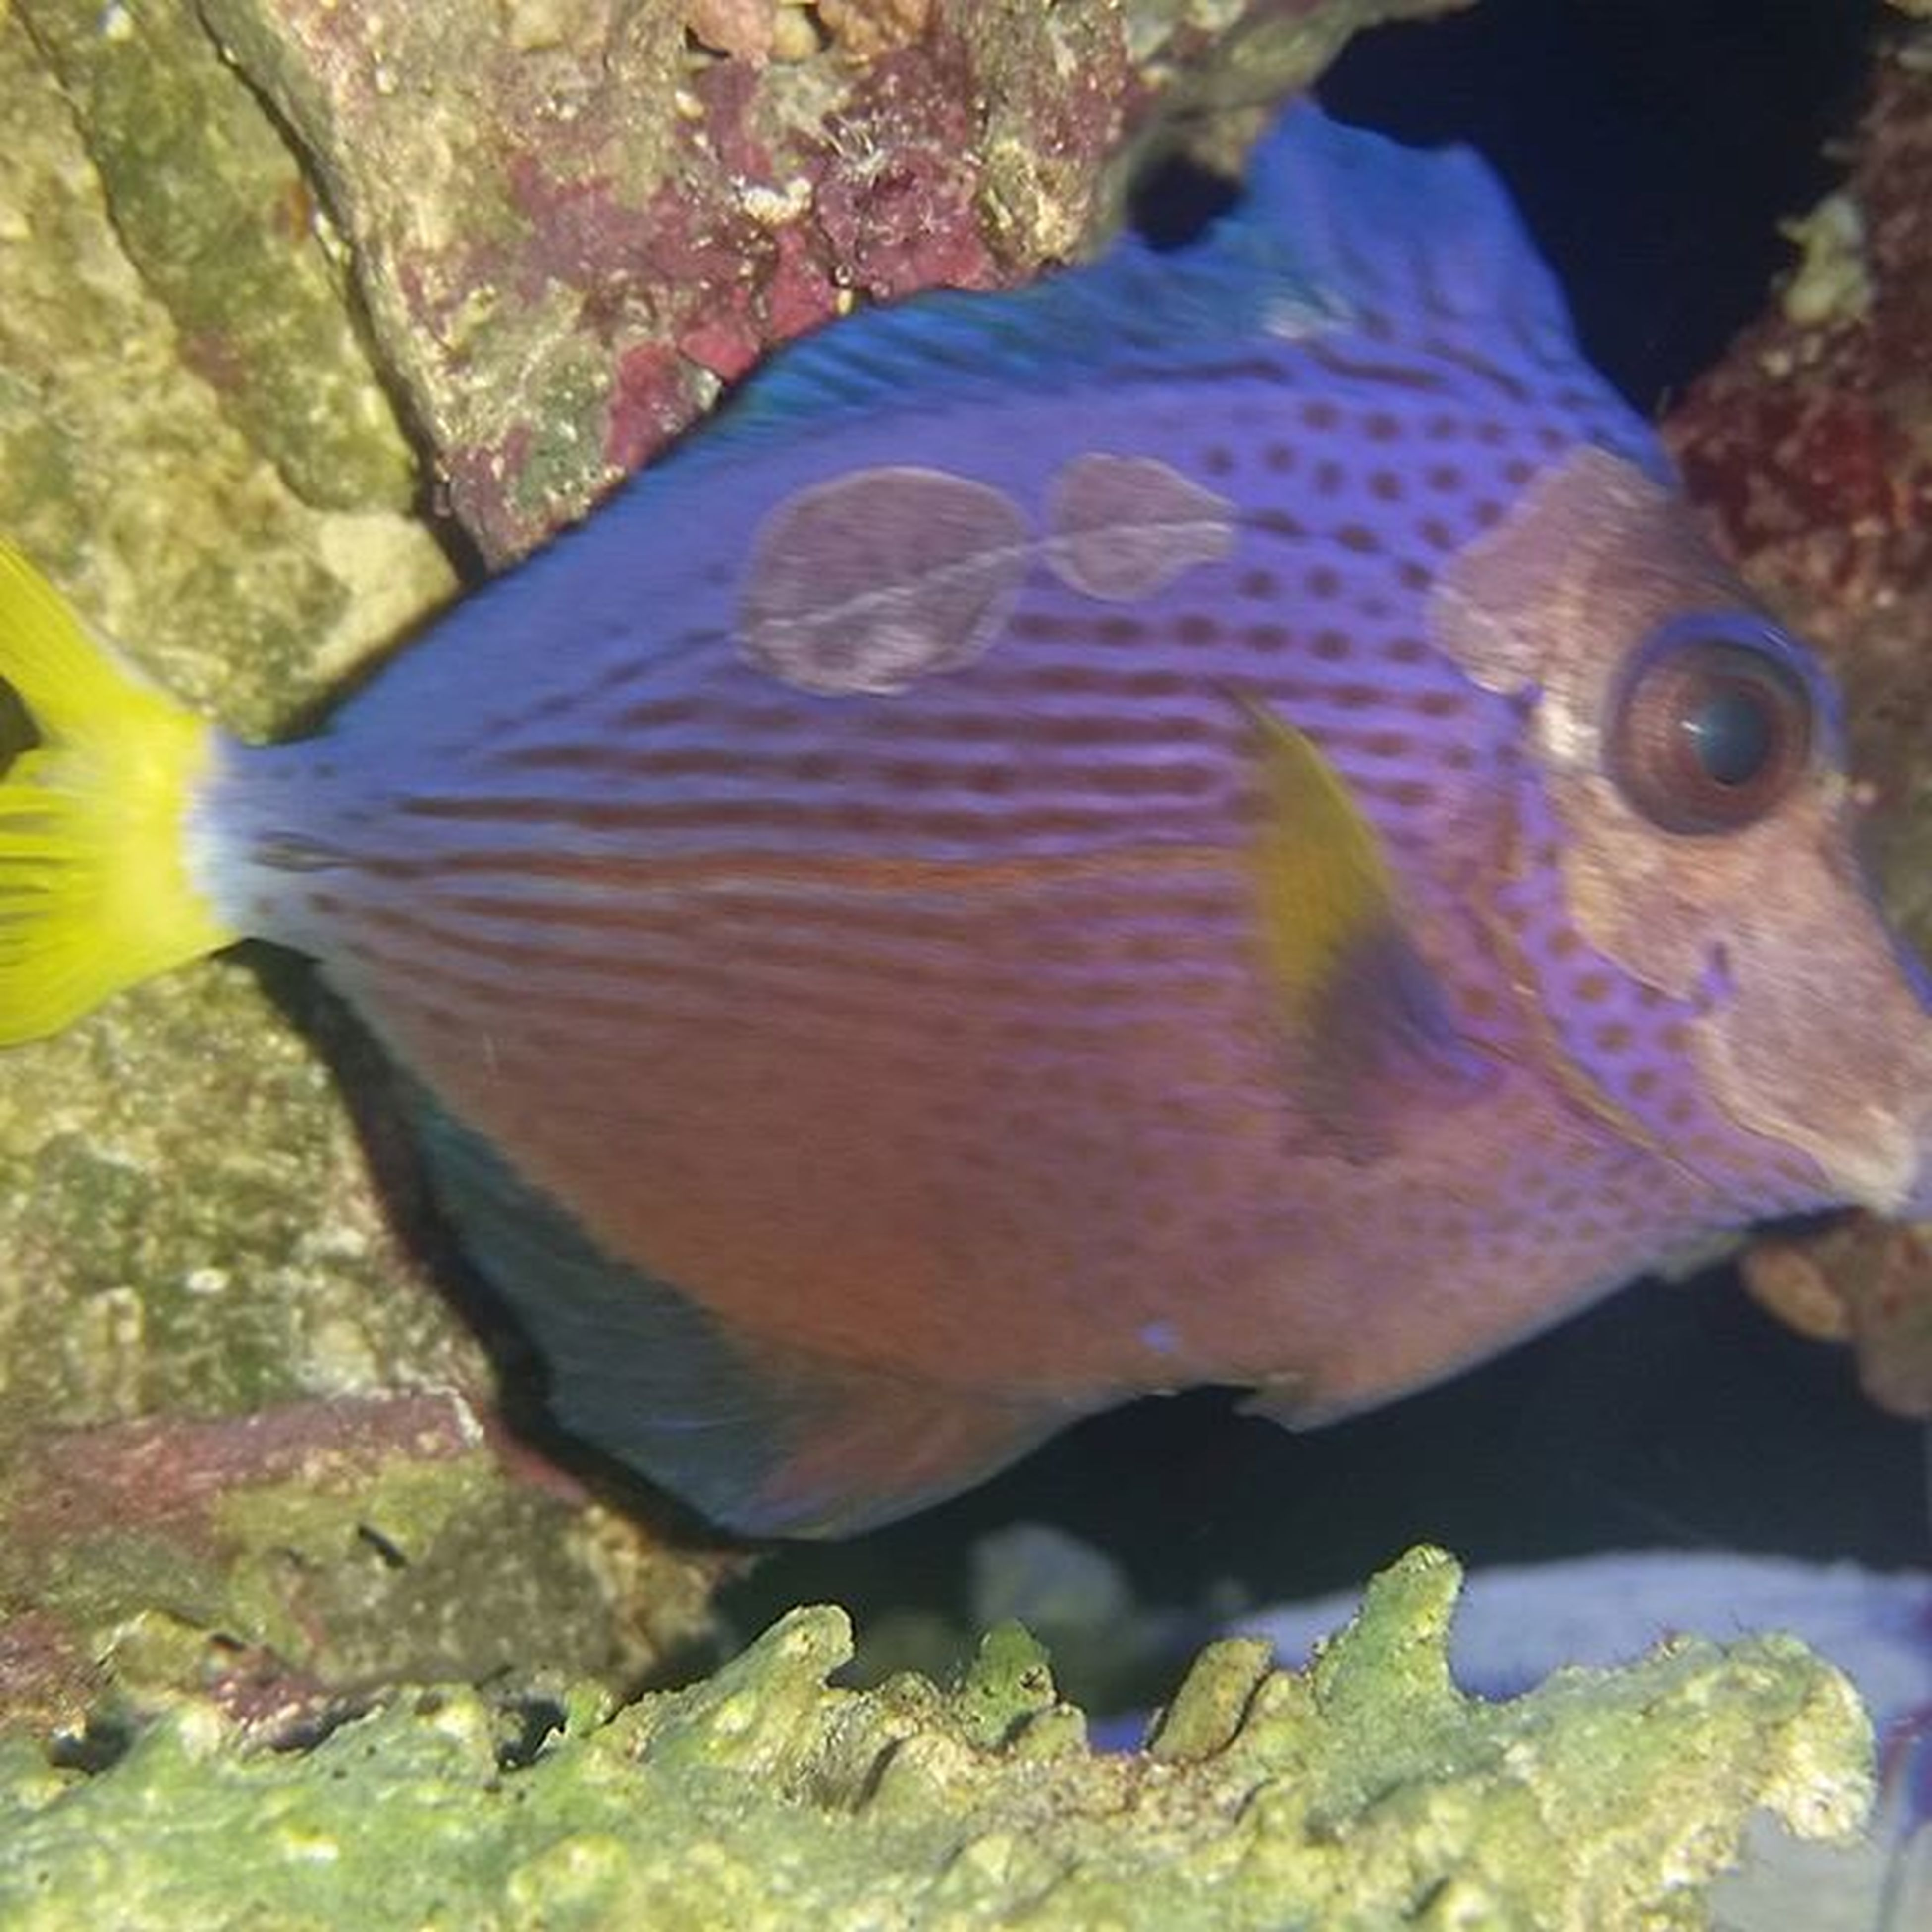 underwater, animal themes, water, fish, animals in the wild, sea life, undersea, swimming, wildlife, one animal, rock - object, close-up, nature, beauty in nature, natural pattern, aquarium, coral, aquatic, rock, no people